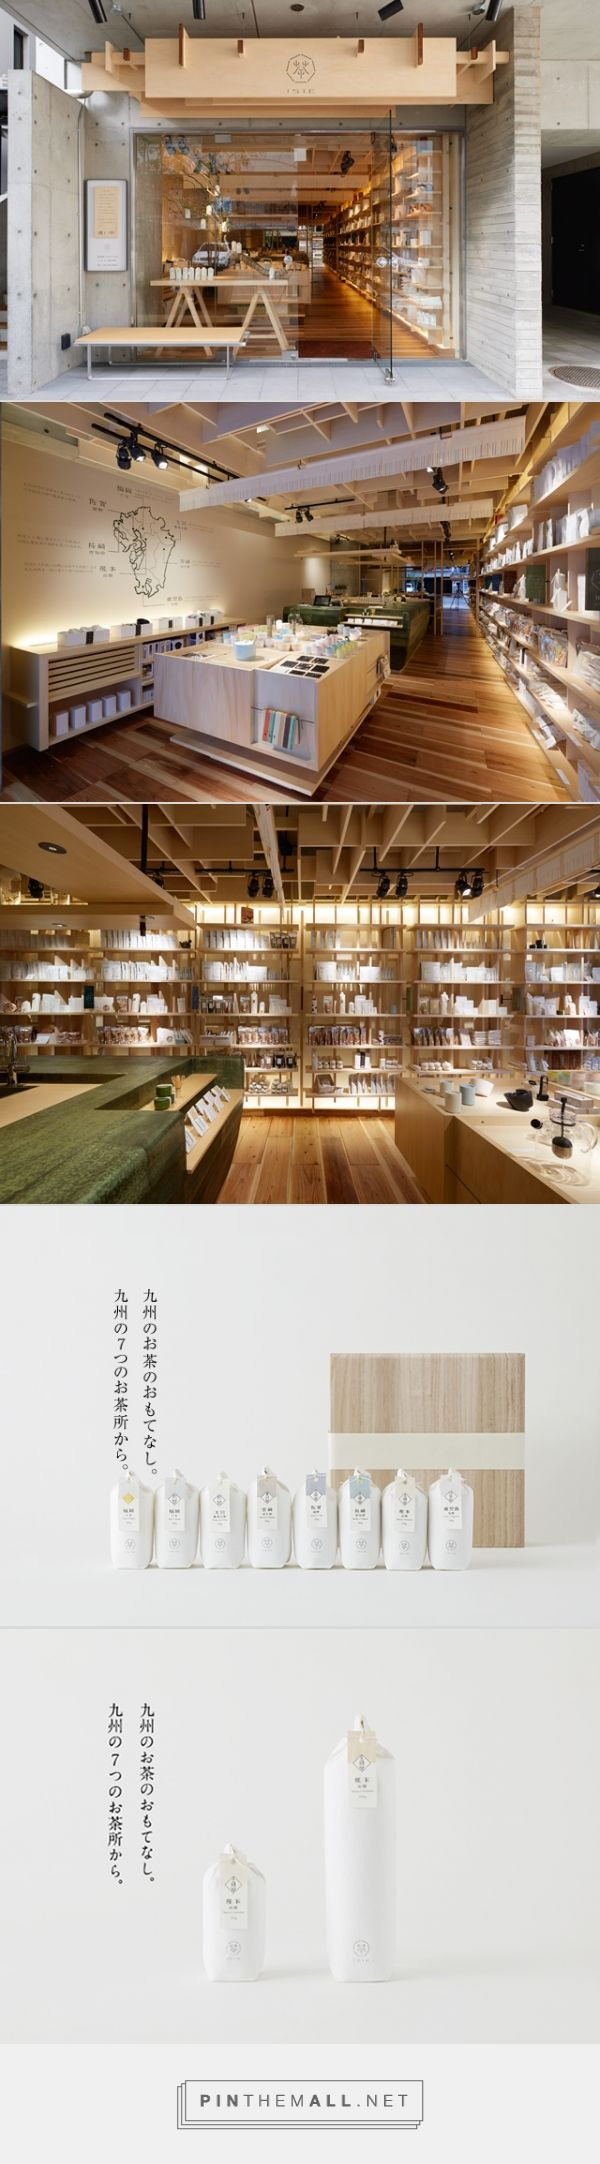 151E | a new tea destination in Fukuoka | Spoon & Tamago - created via http://pinthemall.net